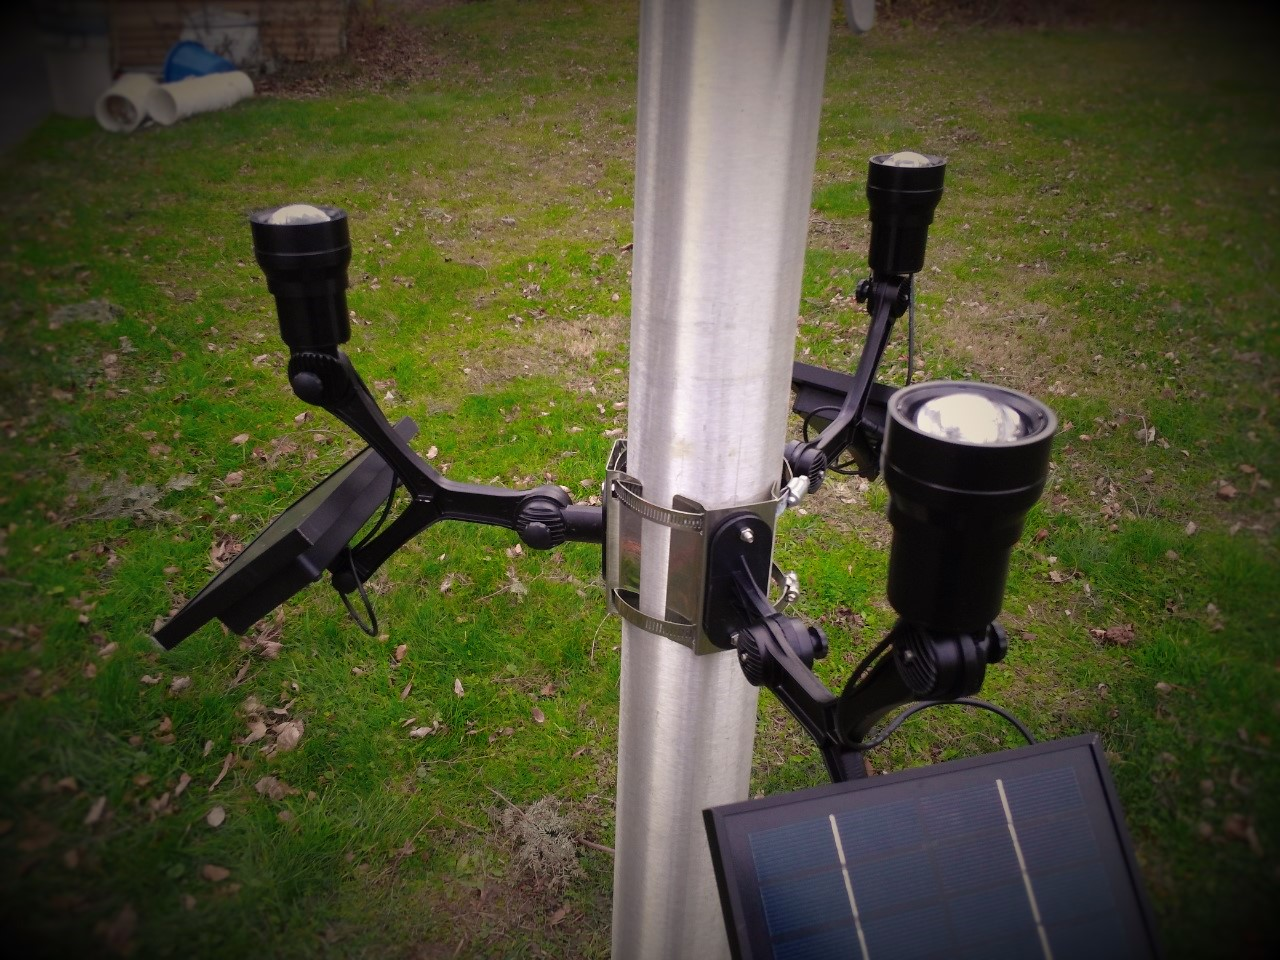 Extreme Unit Commercial Solar CREE Flagpole Light